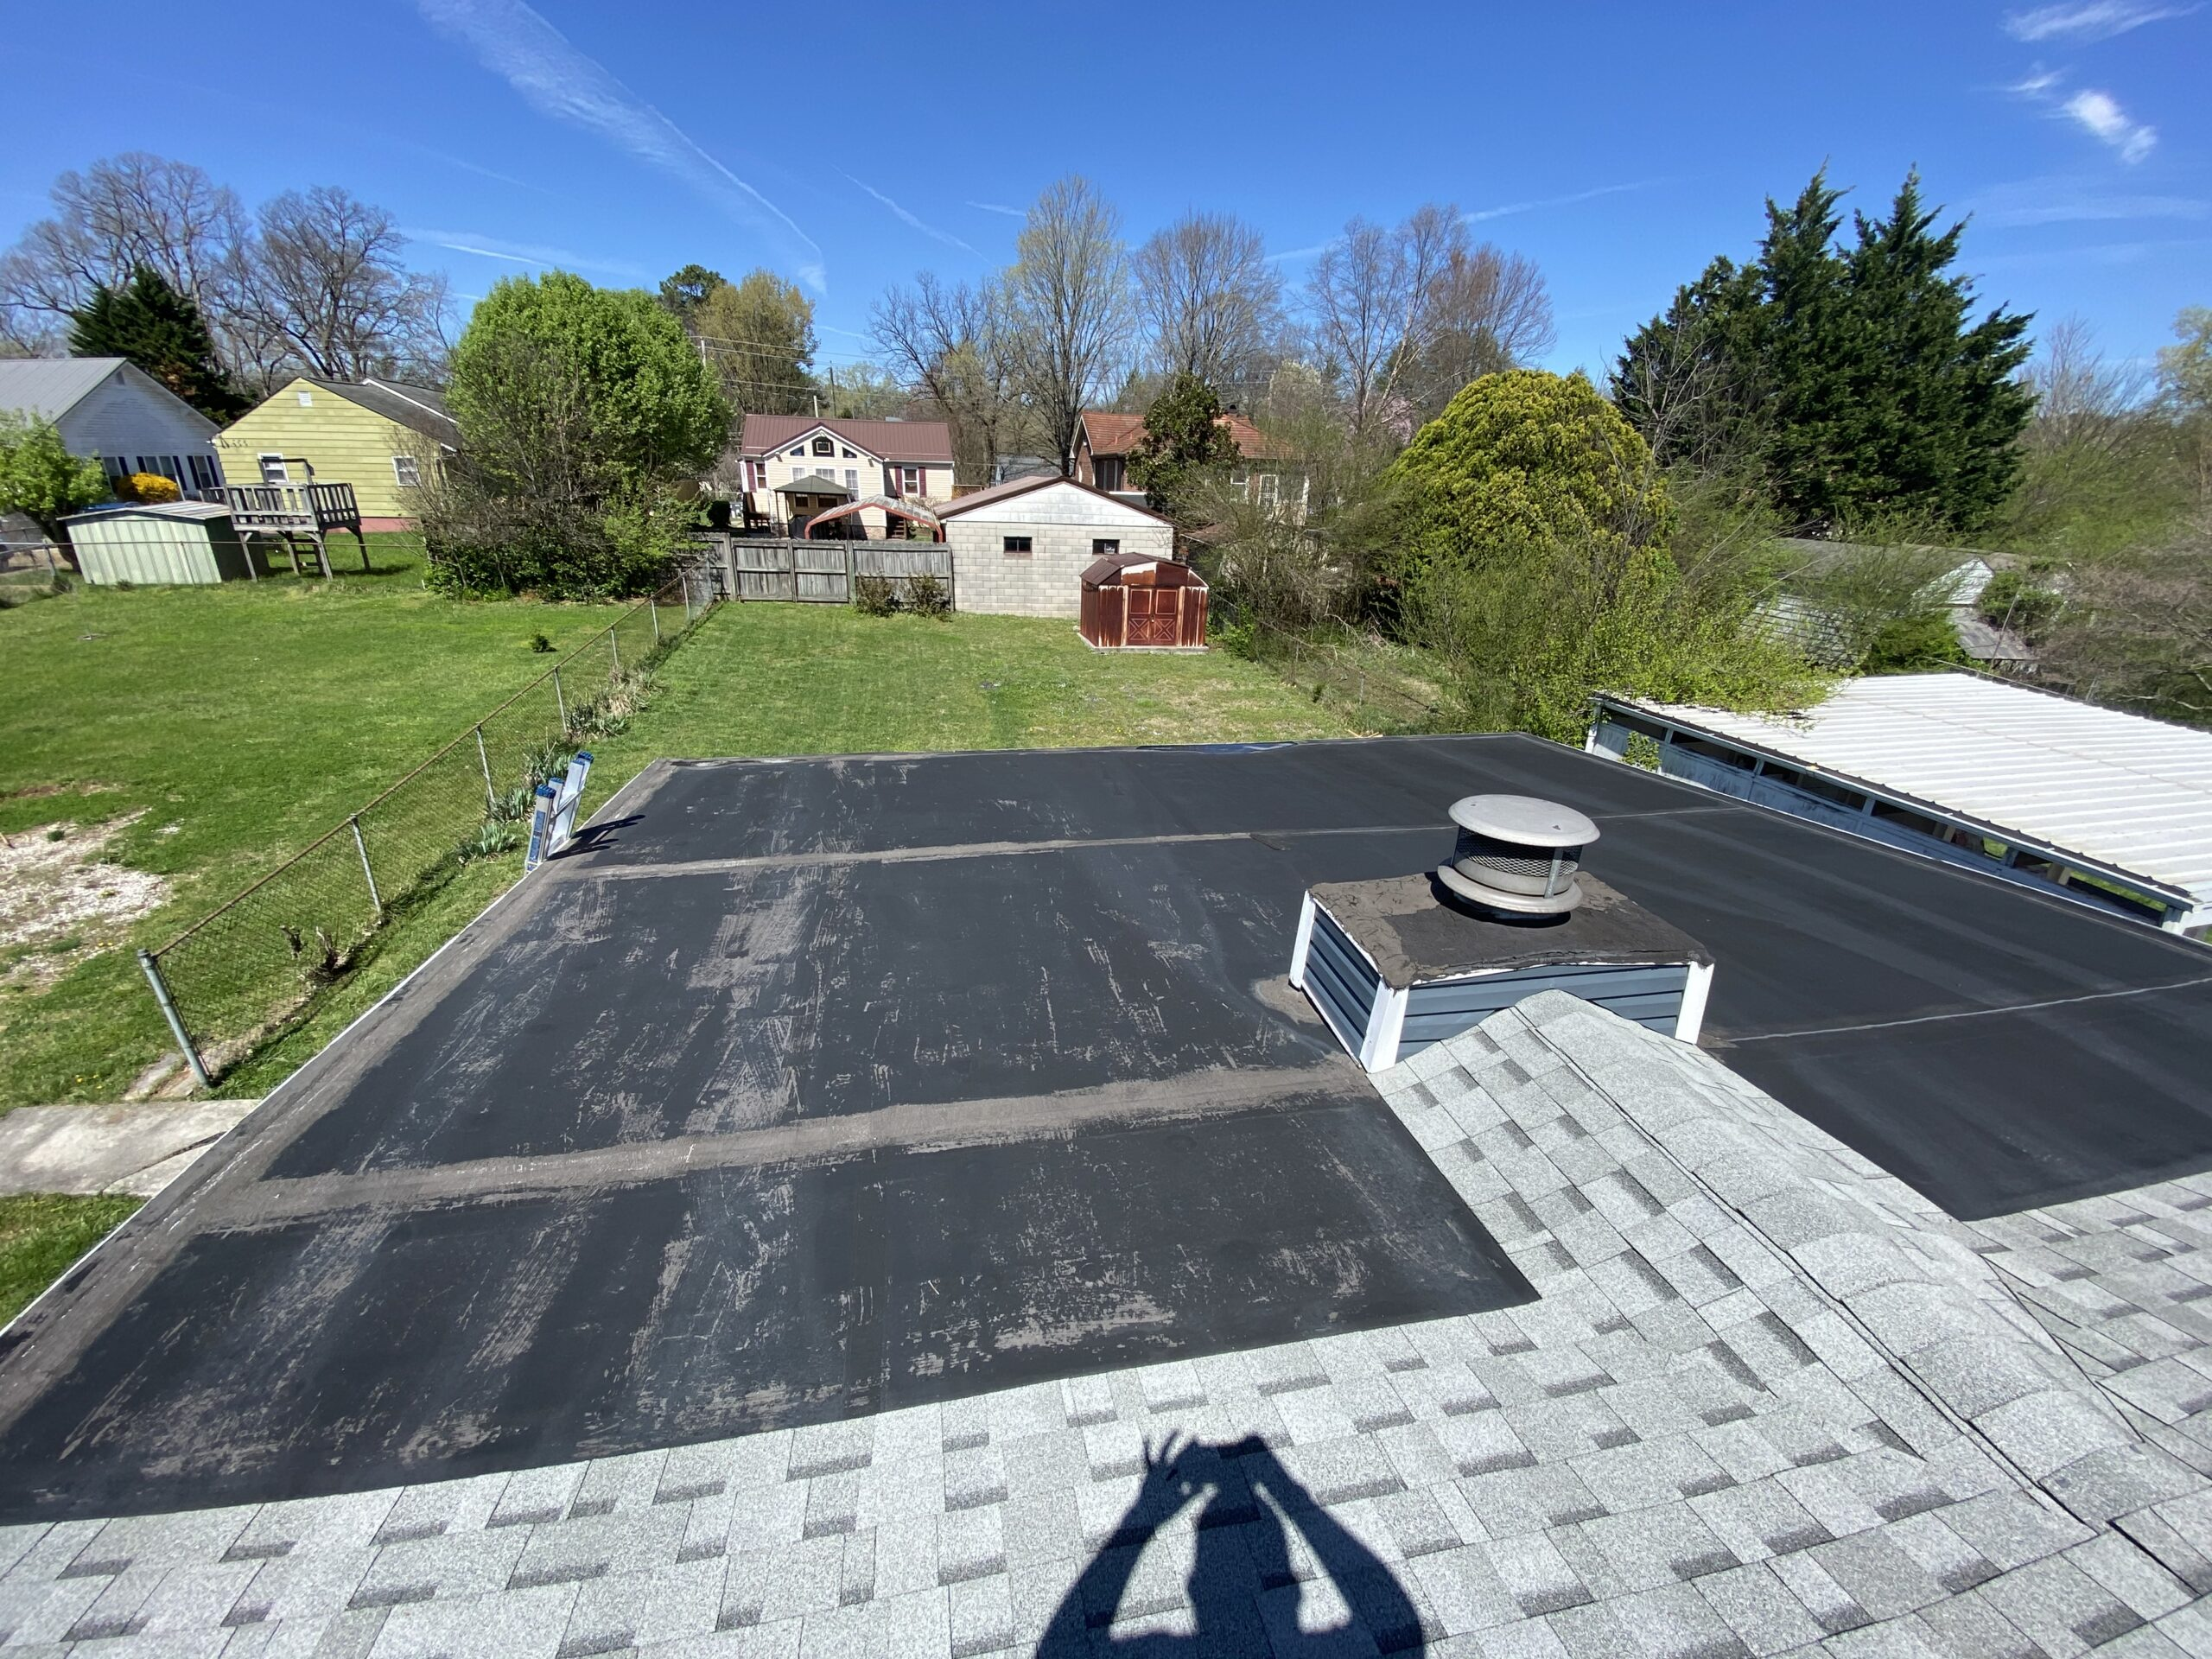 This is a picture of a black flat roof on a carport